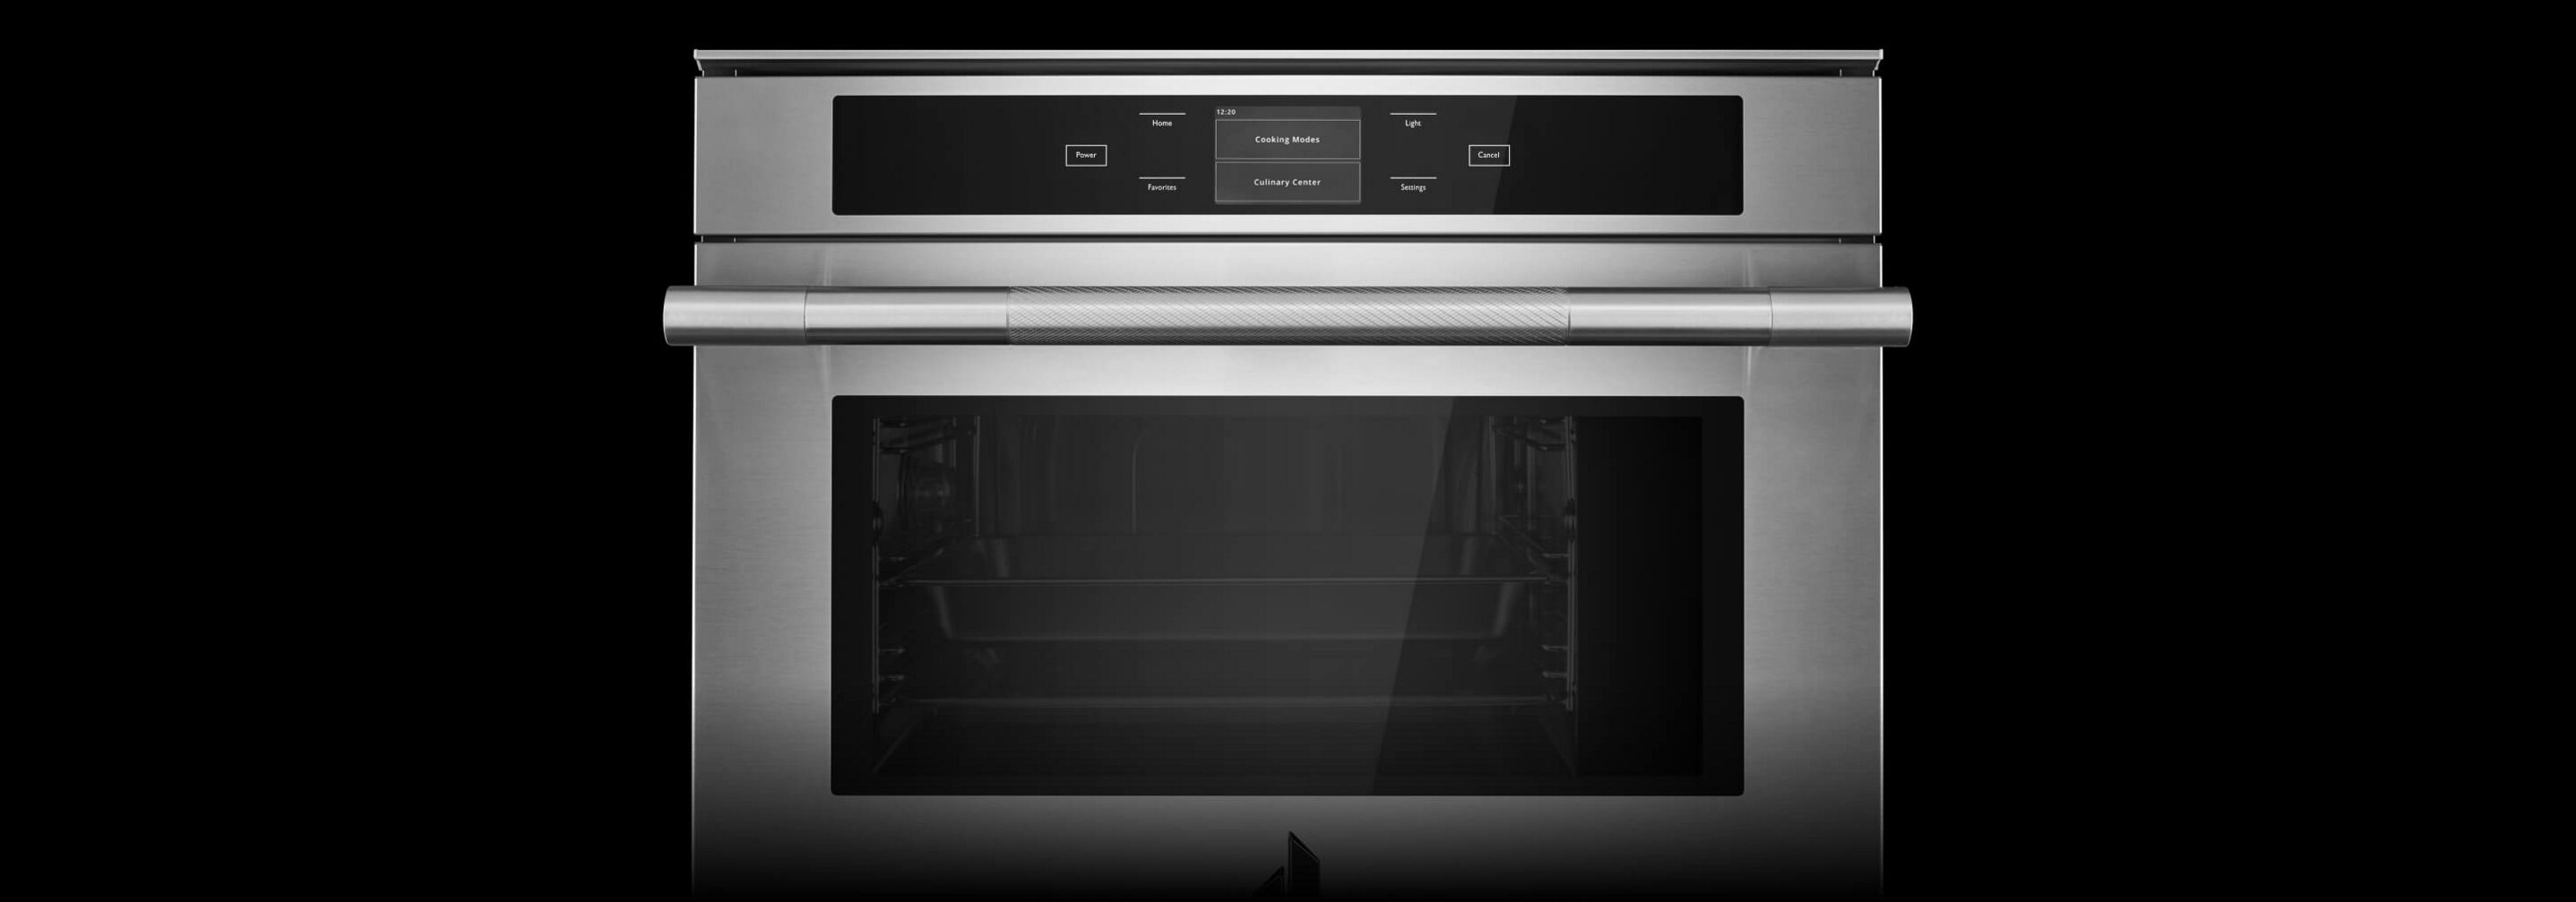 RISE™ 60cm Built-In Steam Oven